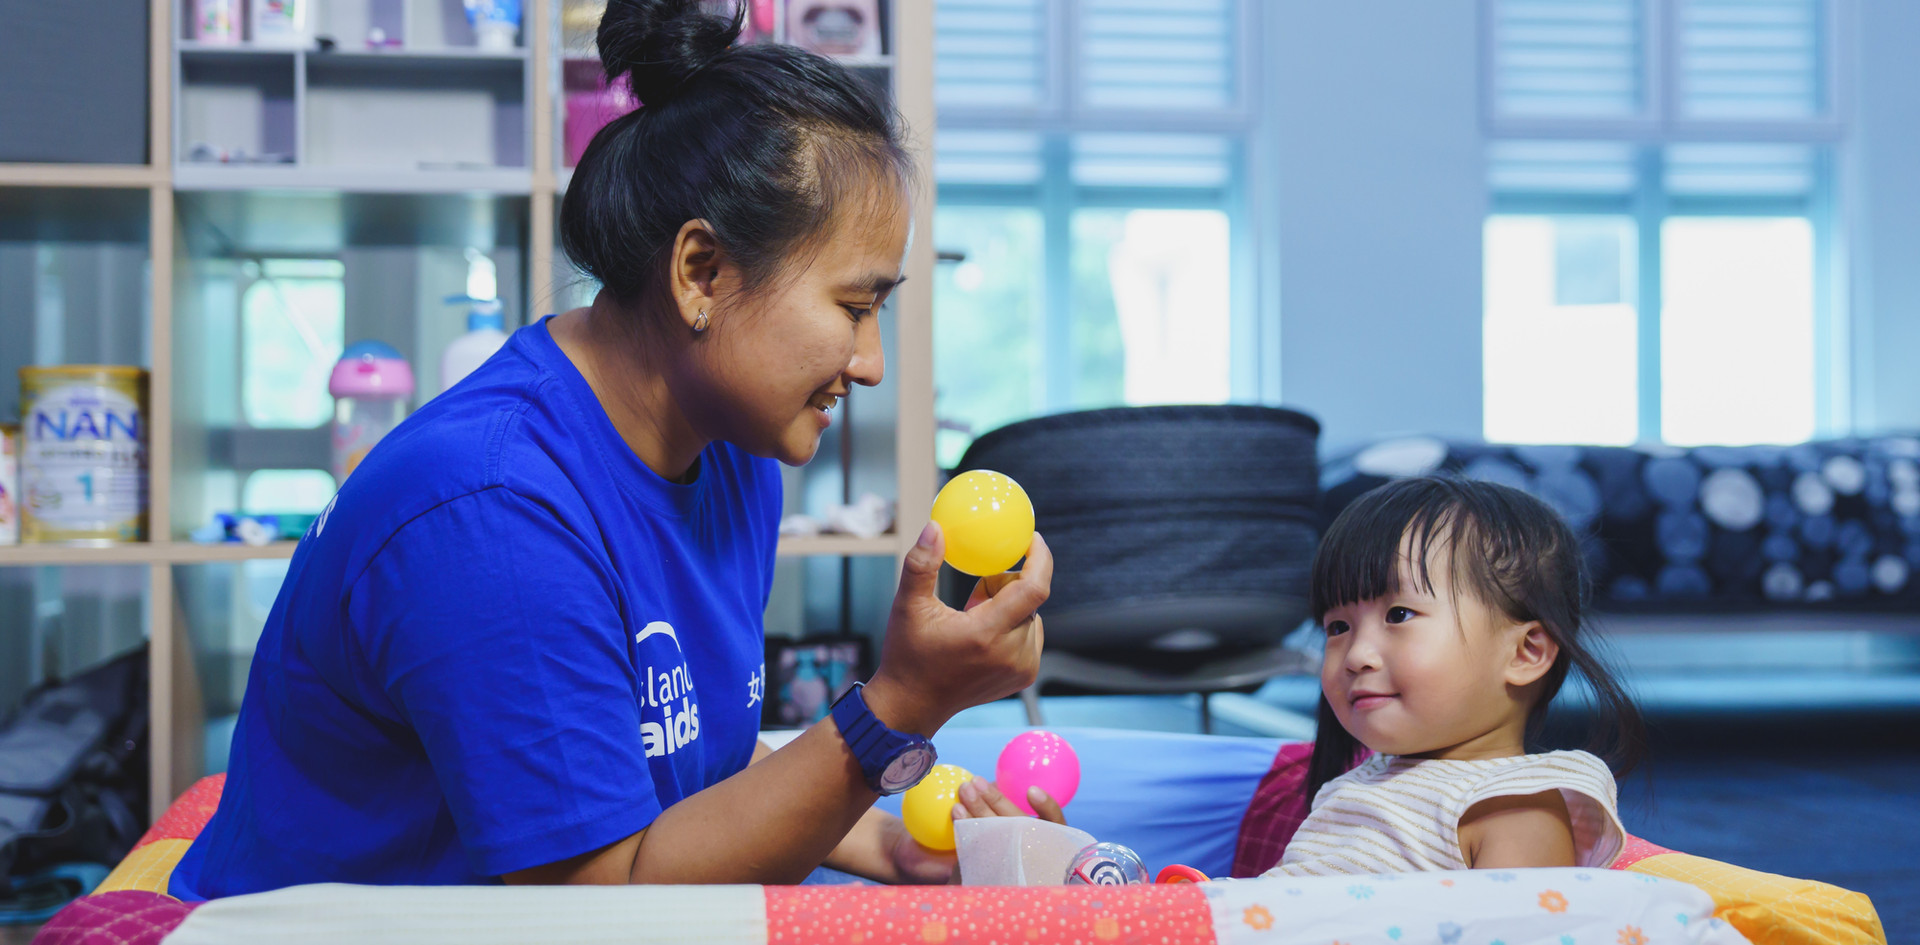 Maid caring for a child in Singapore